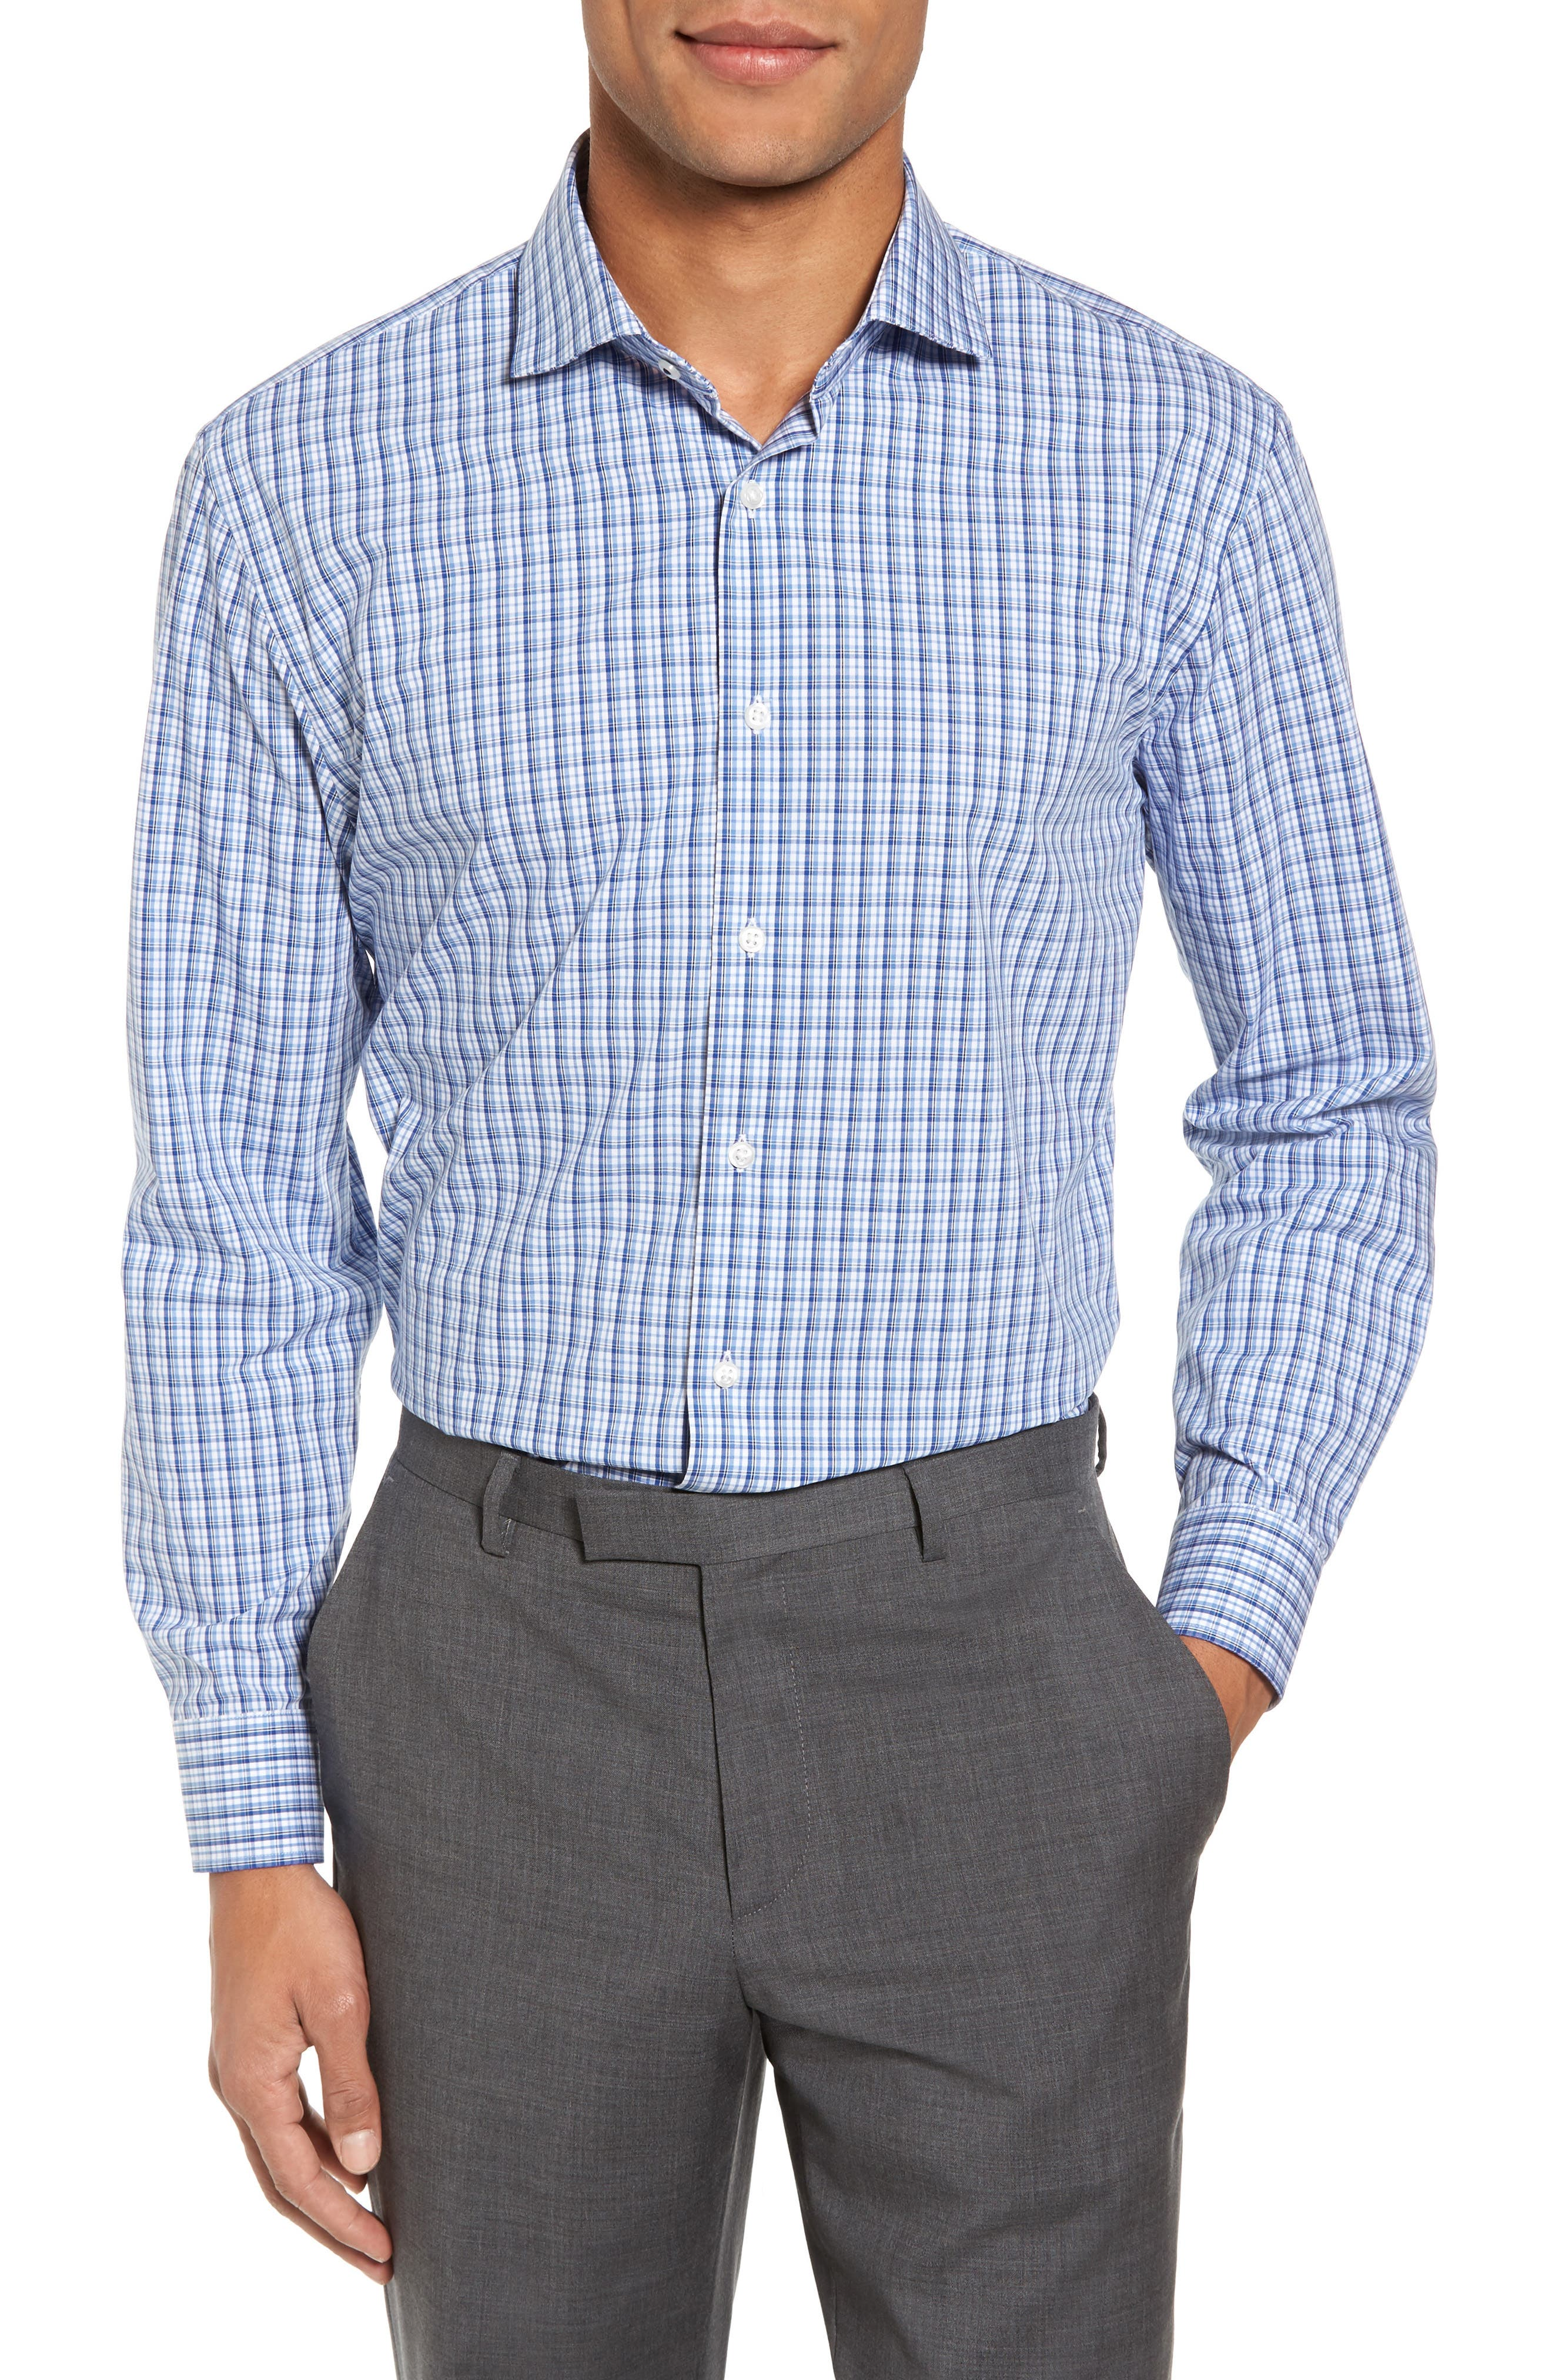 Tech-Smart Trim Fit Stretch Plaid Dress Shirt,                         Main,                         color, 401